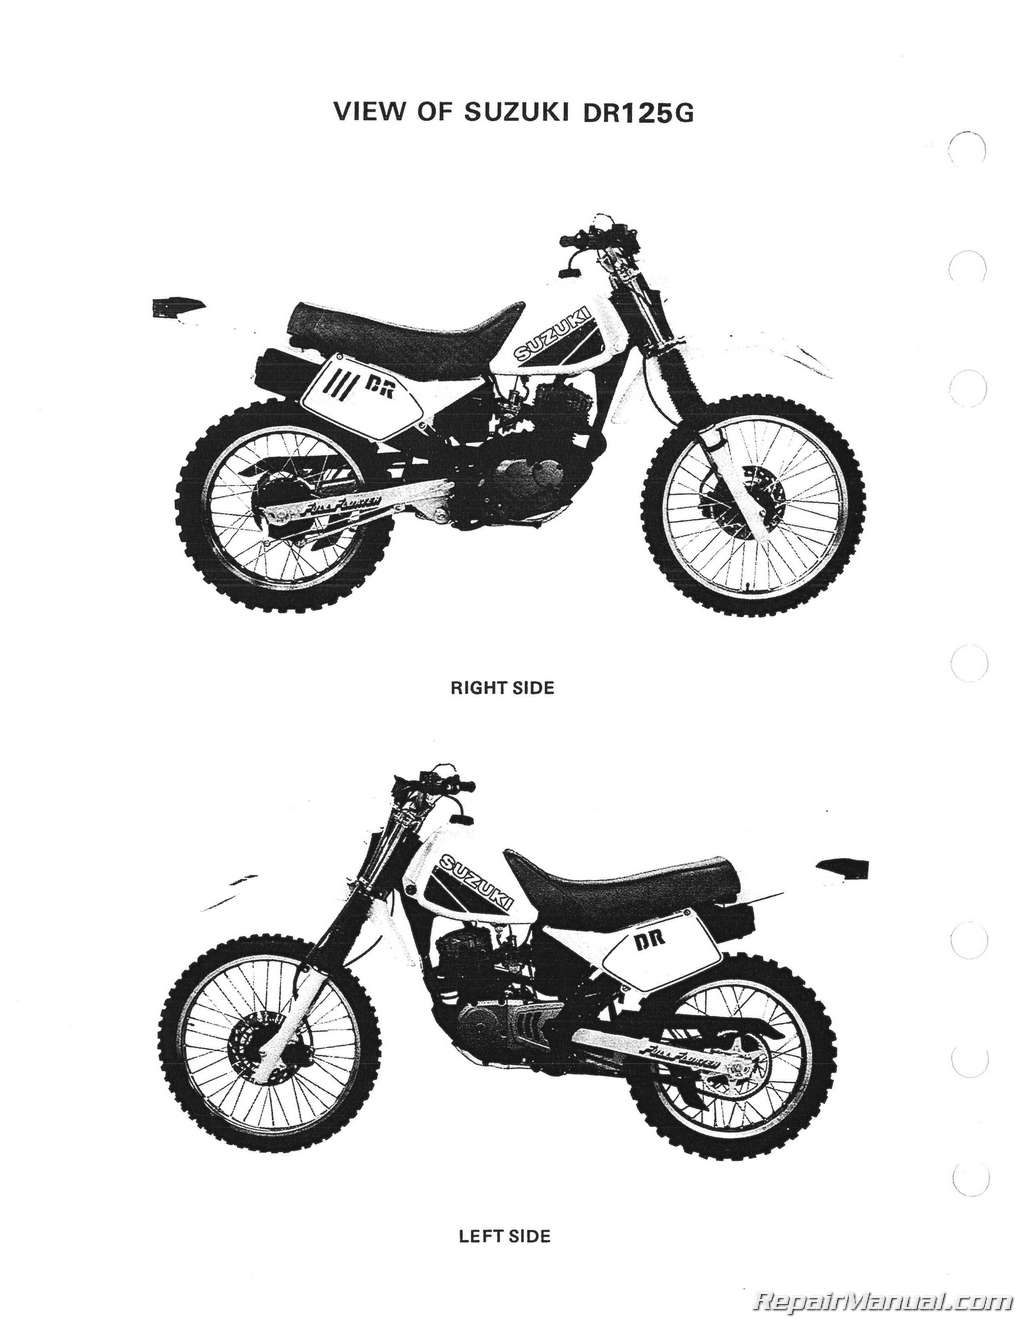 1986 1987 1988 suzuki dr125 sp125 motorcycle service manual rh repairmanual com Suzuki DR200 suzuki dr 125 service manual free download